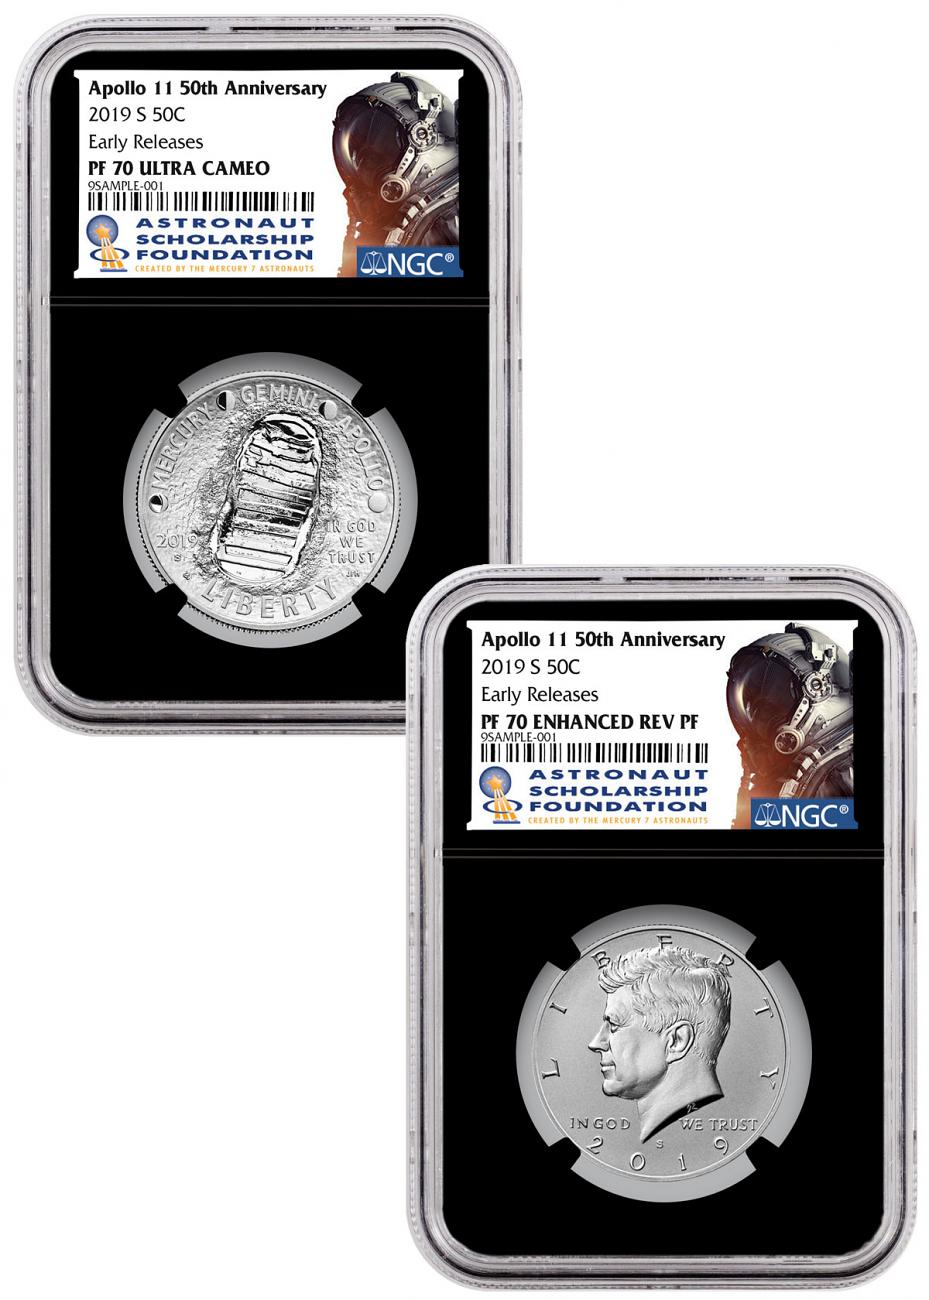 2019-S US Apollo 11 50th Anniversary 2-Coin Commemorative Clad Half Dollar Proof + Enhanced Reverse Proof Set NGC PF70 ER Black Core Holder Astronaut Scholarship Foundation Label